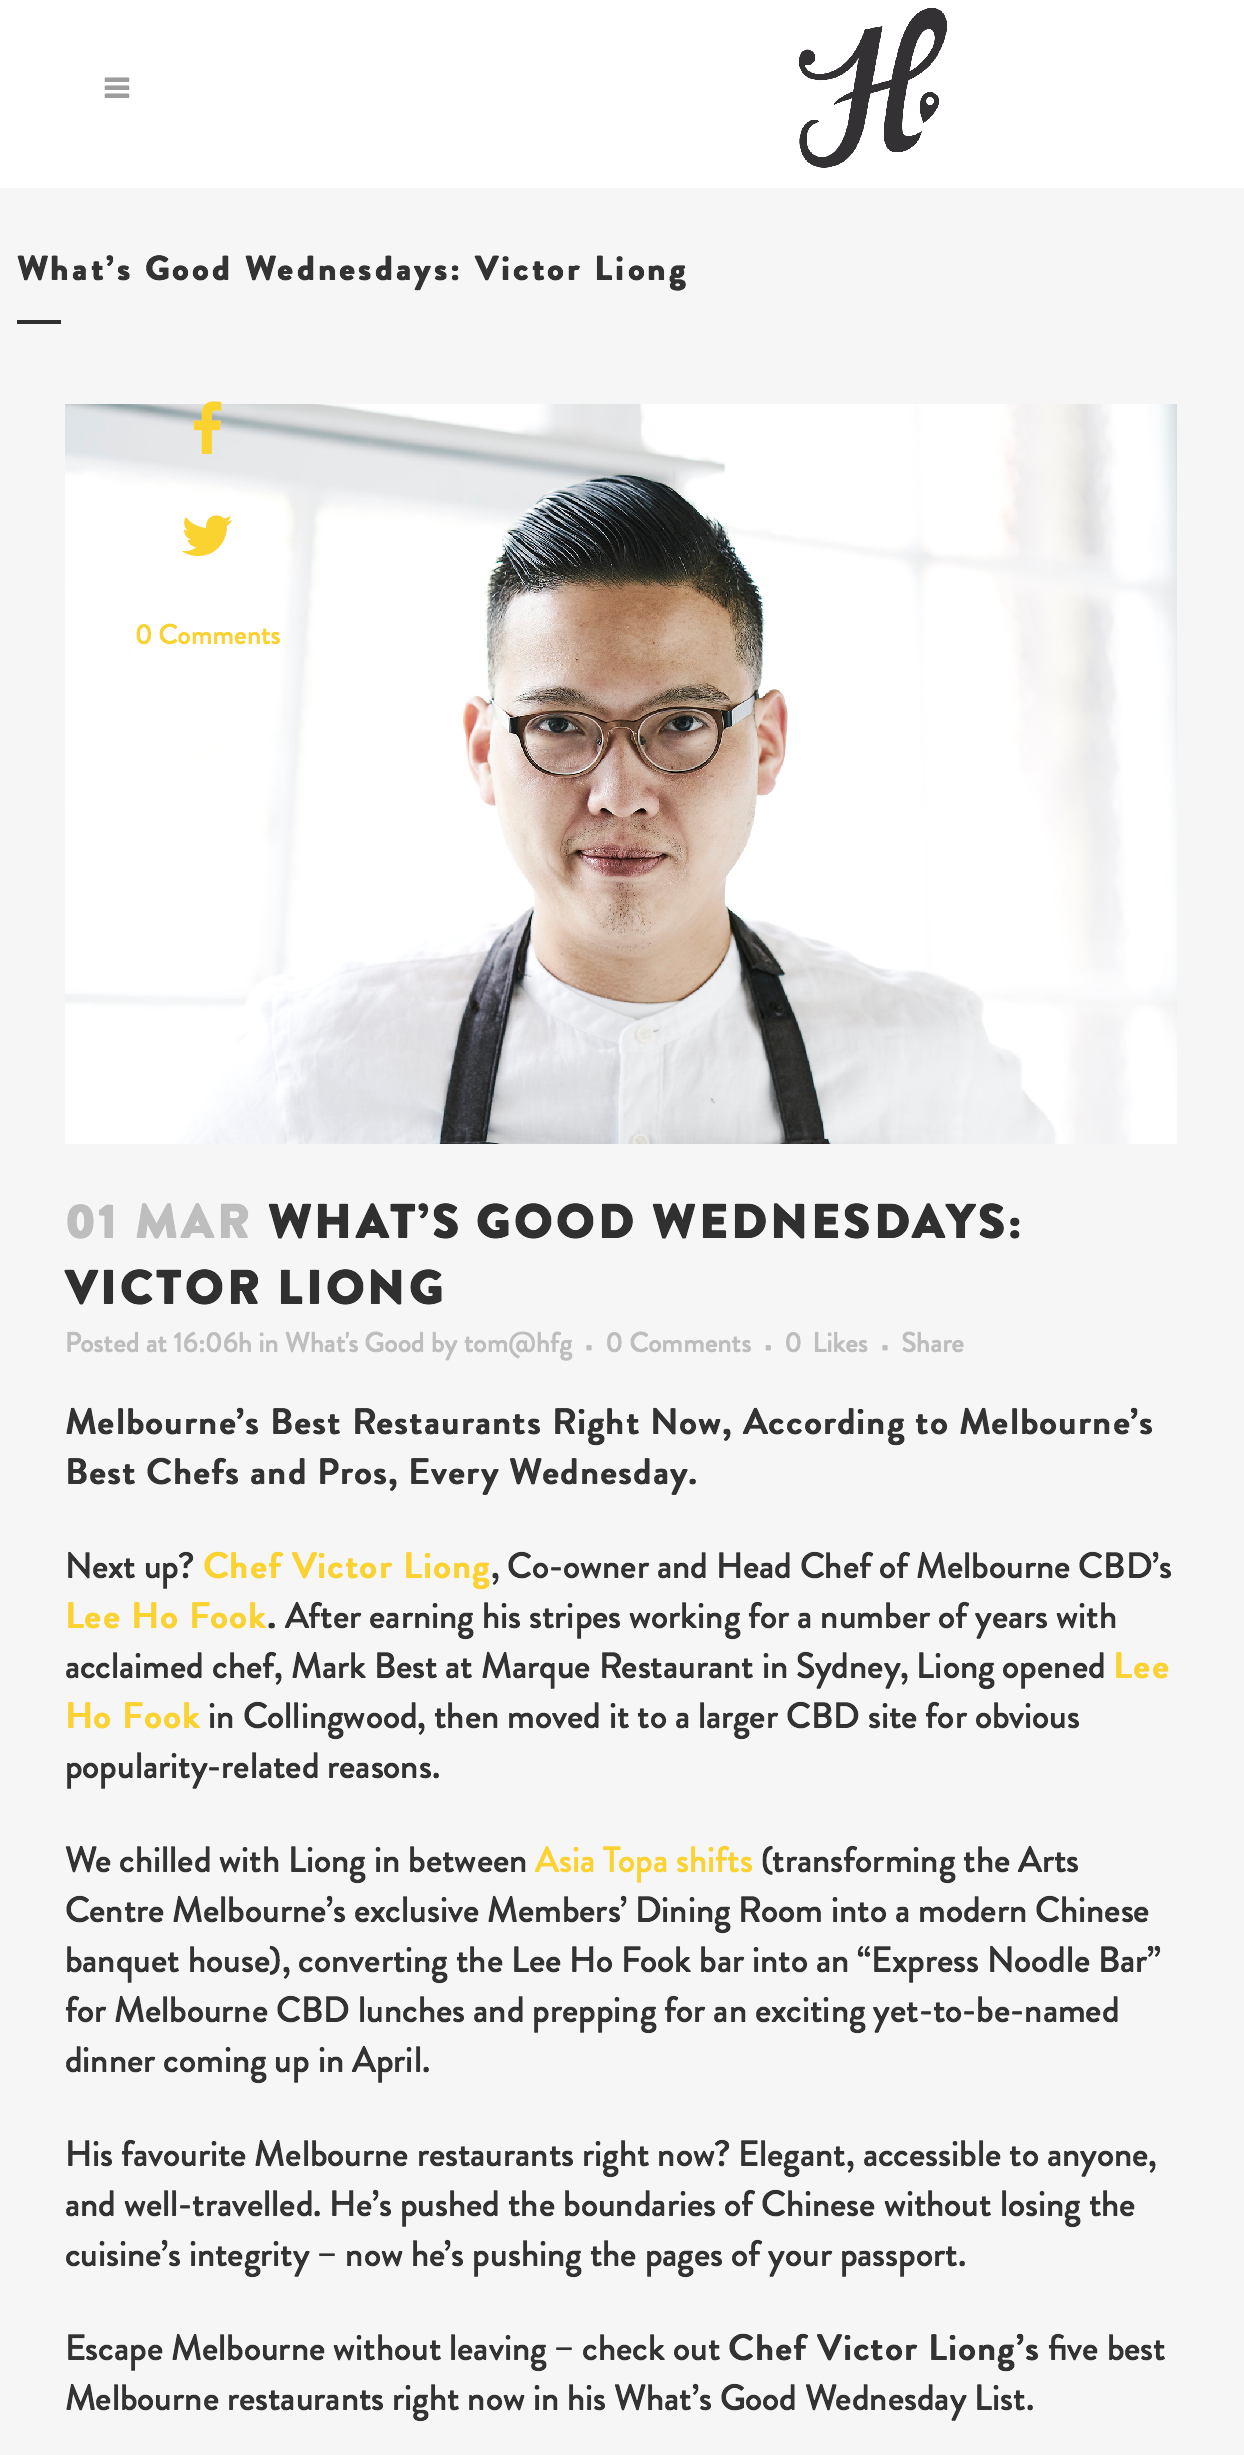 What's Good Wednesdays: Victor Liong [Hood Food Guide]